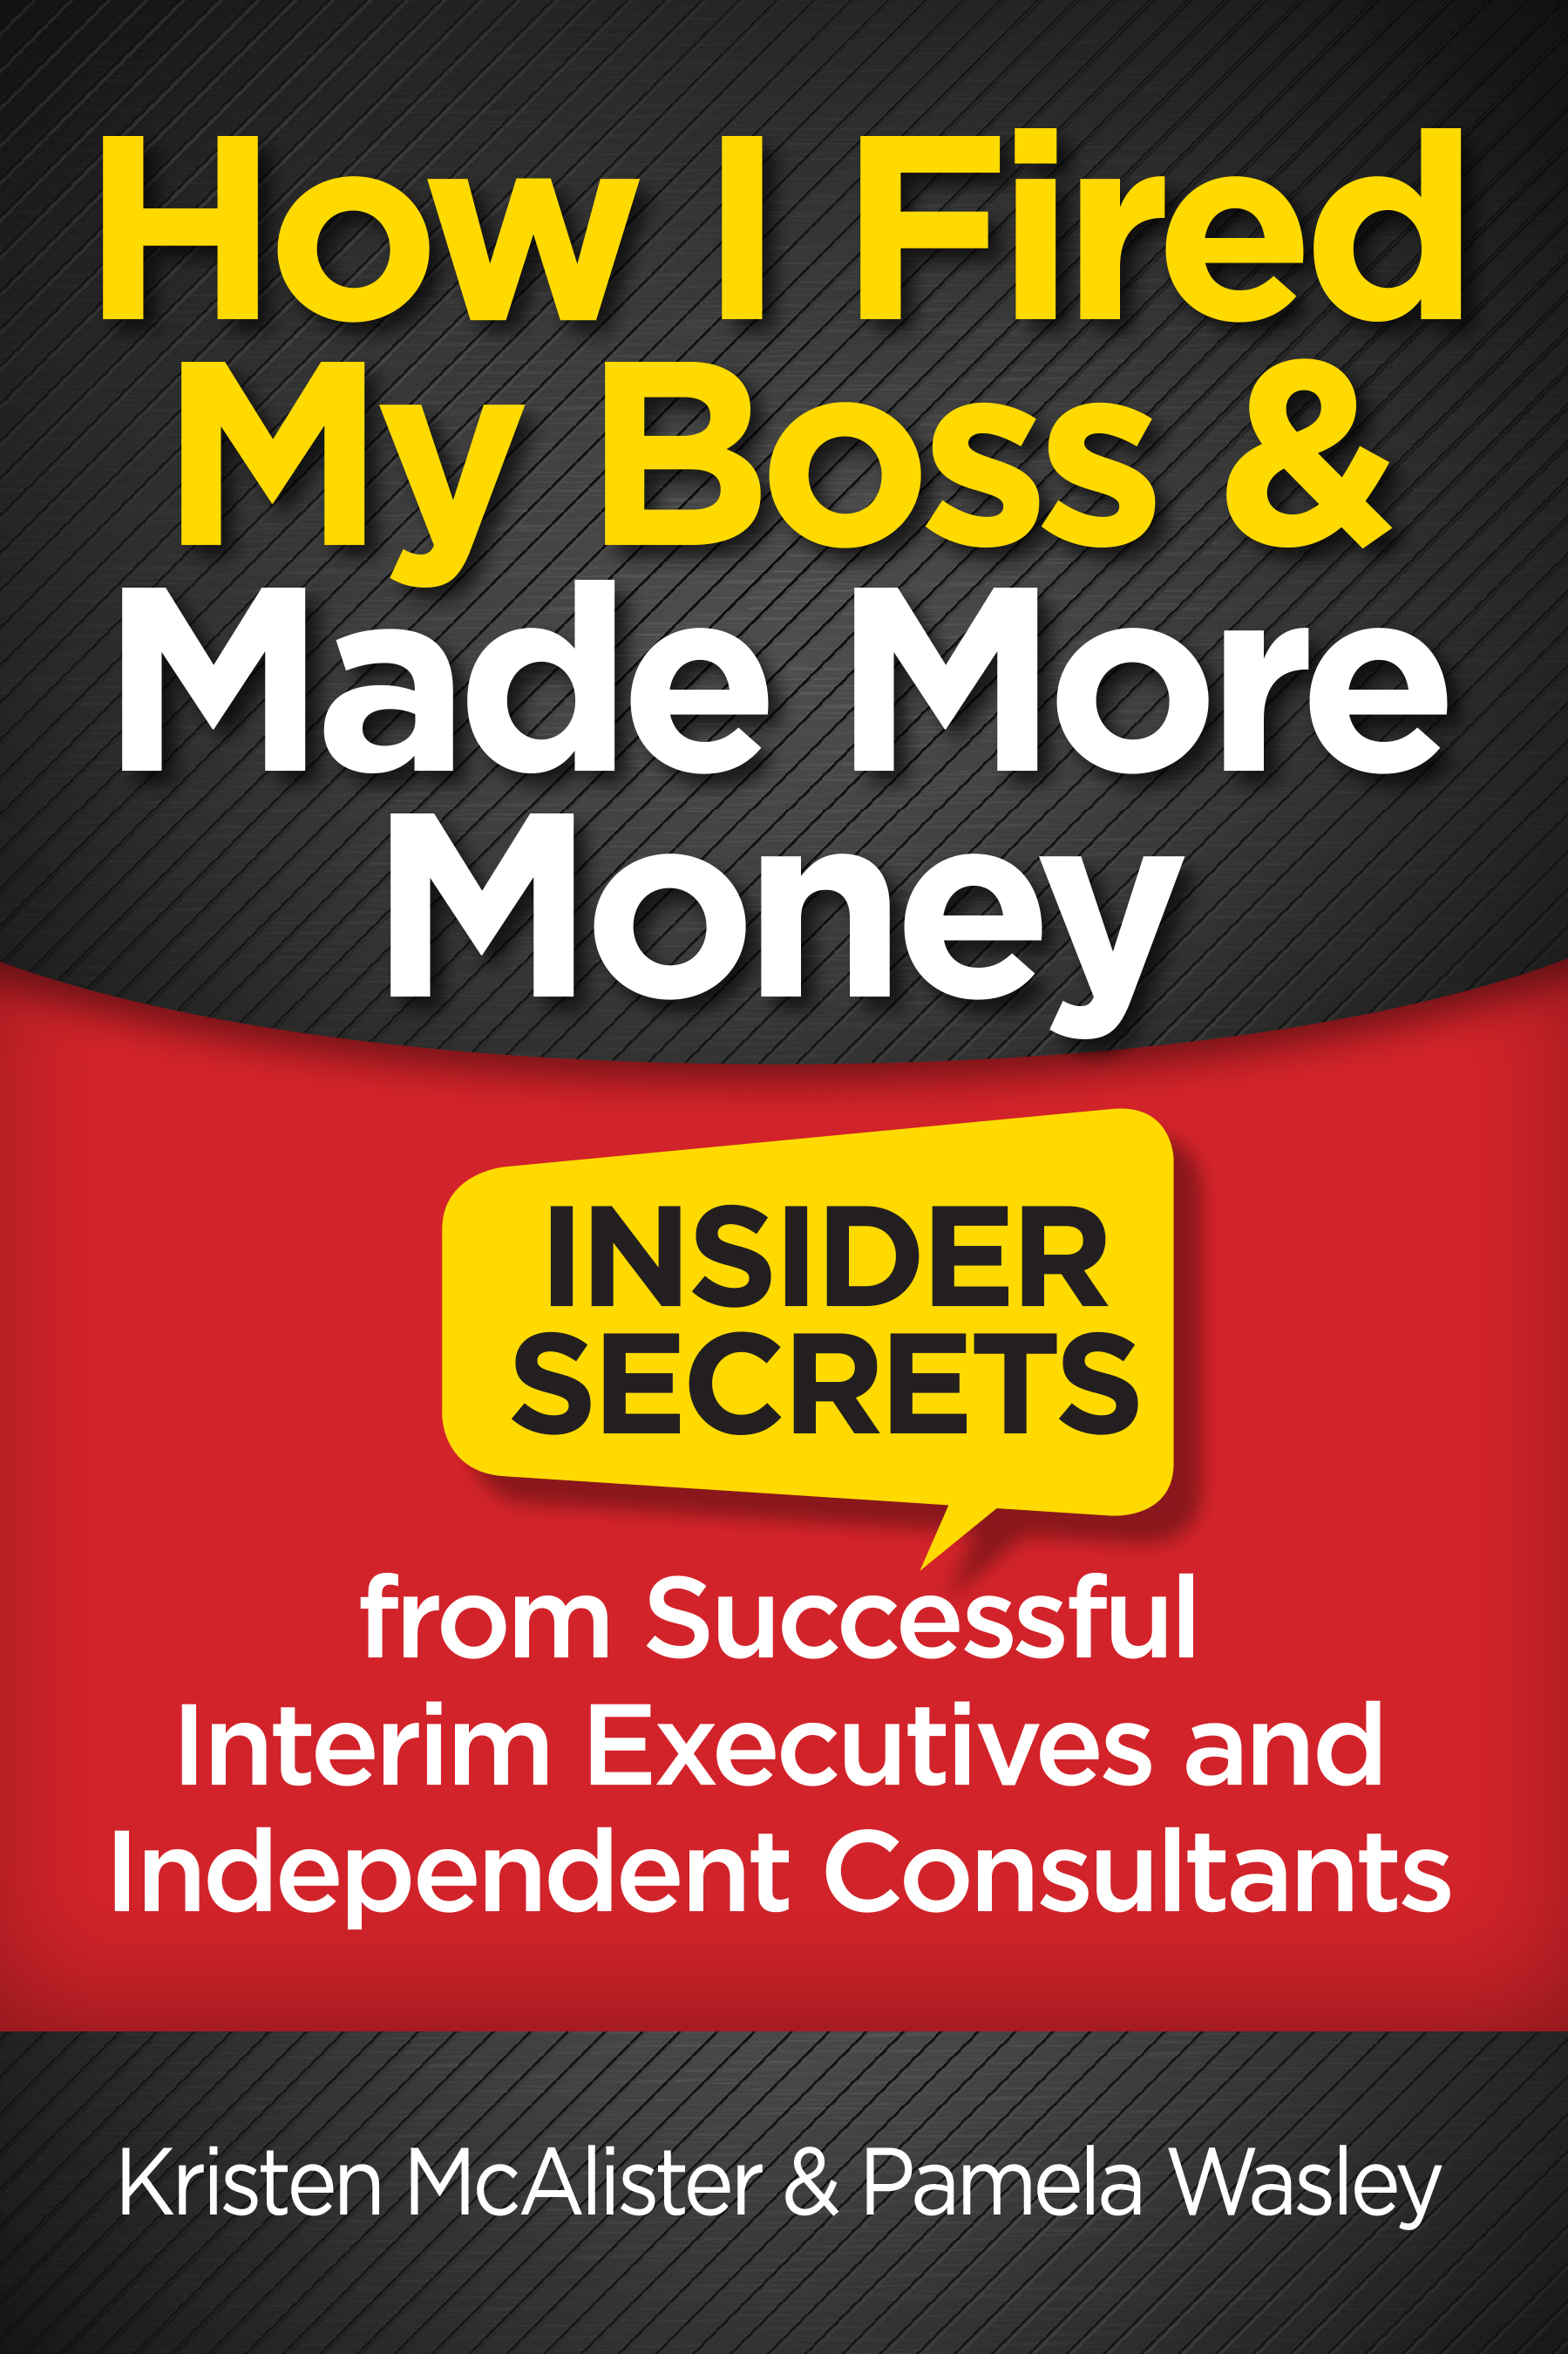 How I Fired My Boss & Made More Money